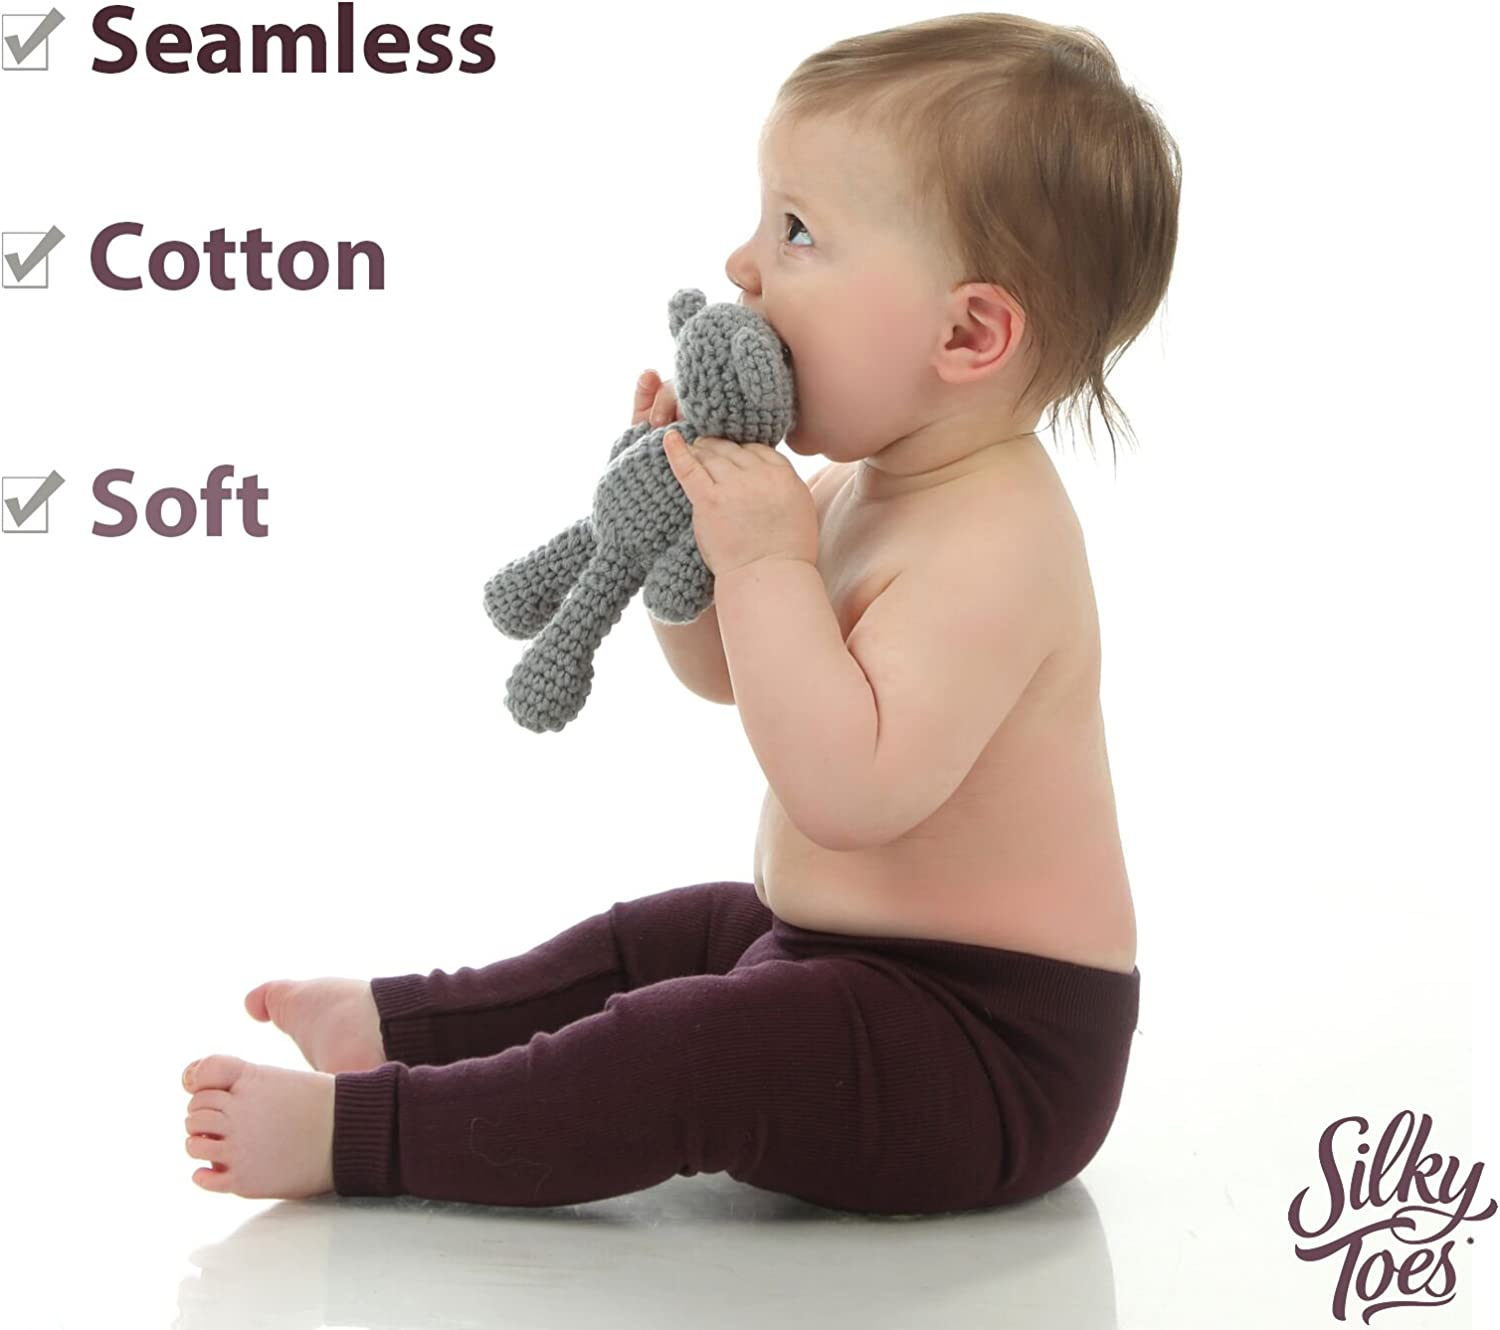 Toddler Seamless Soft Cotton Knit Pants Girls Boys Silky Toes Baby Shimmer Leggings